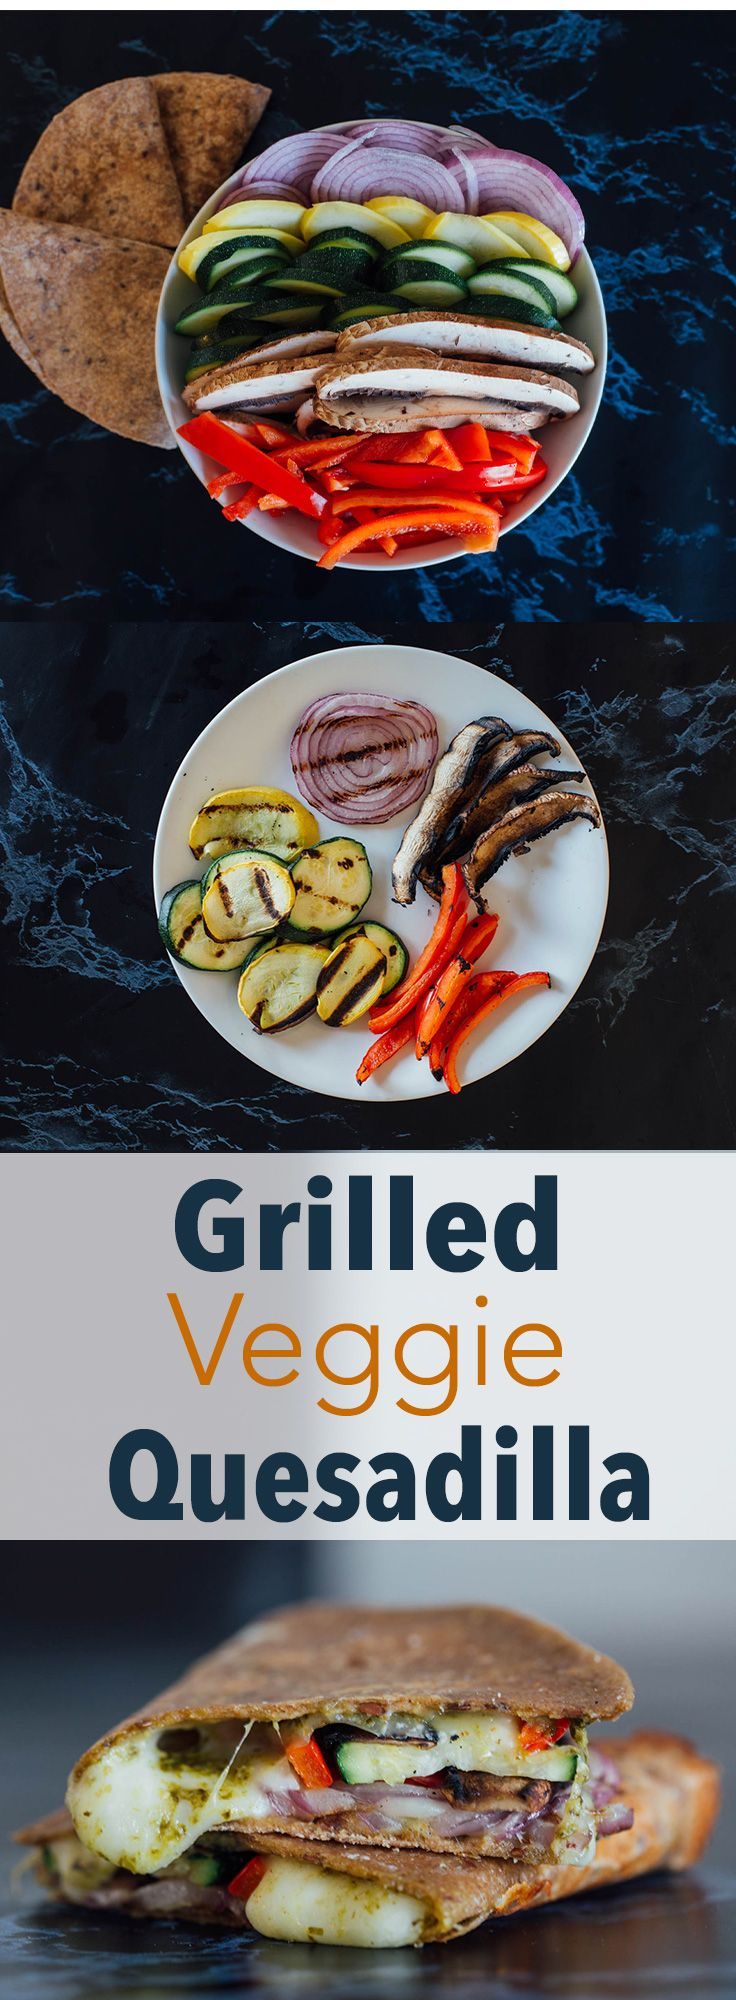 Grilled Veggie Quesadilla -- Indulge in your craving for warm, gooey cheese without wrecking your diet. // recipes // lunches // dinners // healthy recipes // vegetarian // quesadillas // healthy eating // clean eating // beachbody | BeachbodyBlog.com